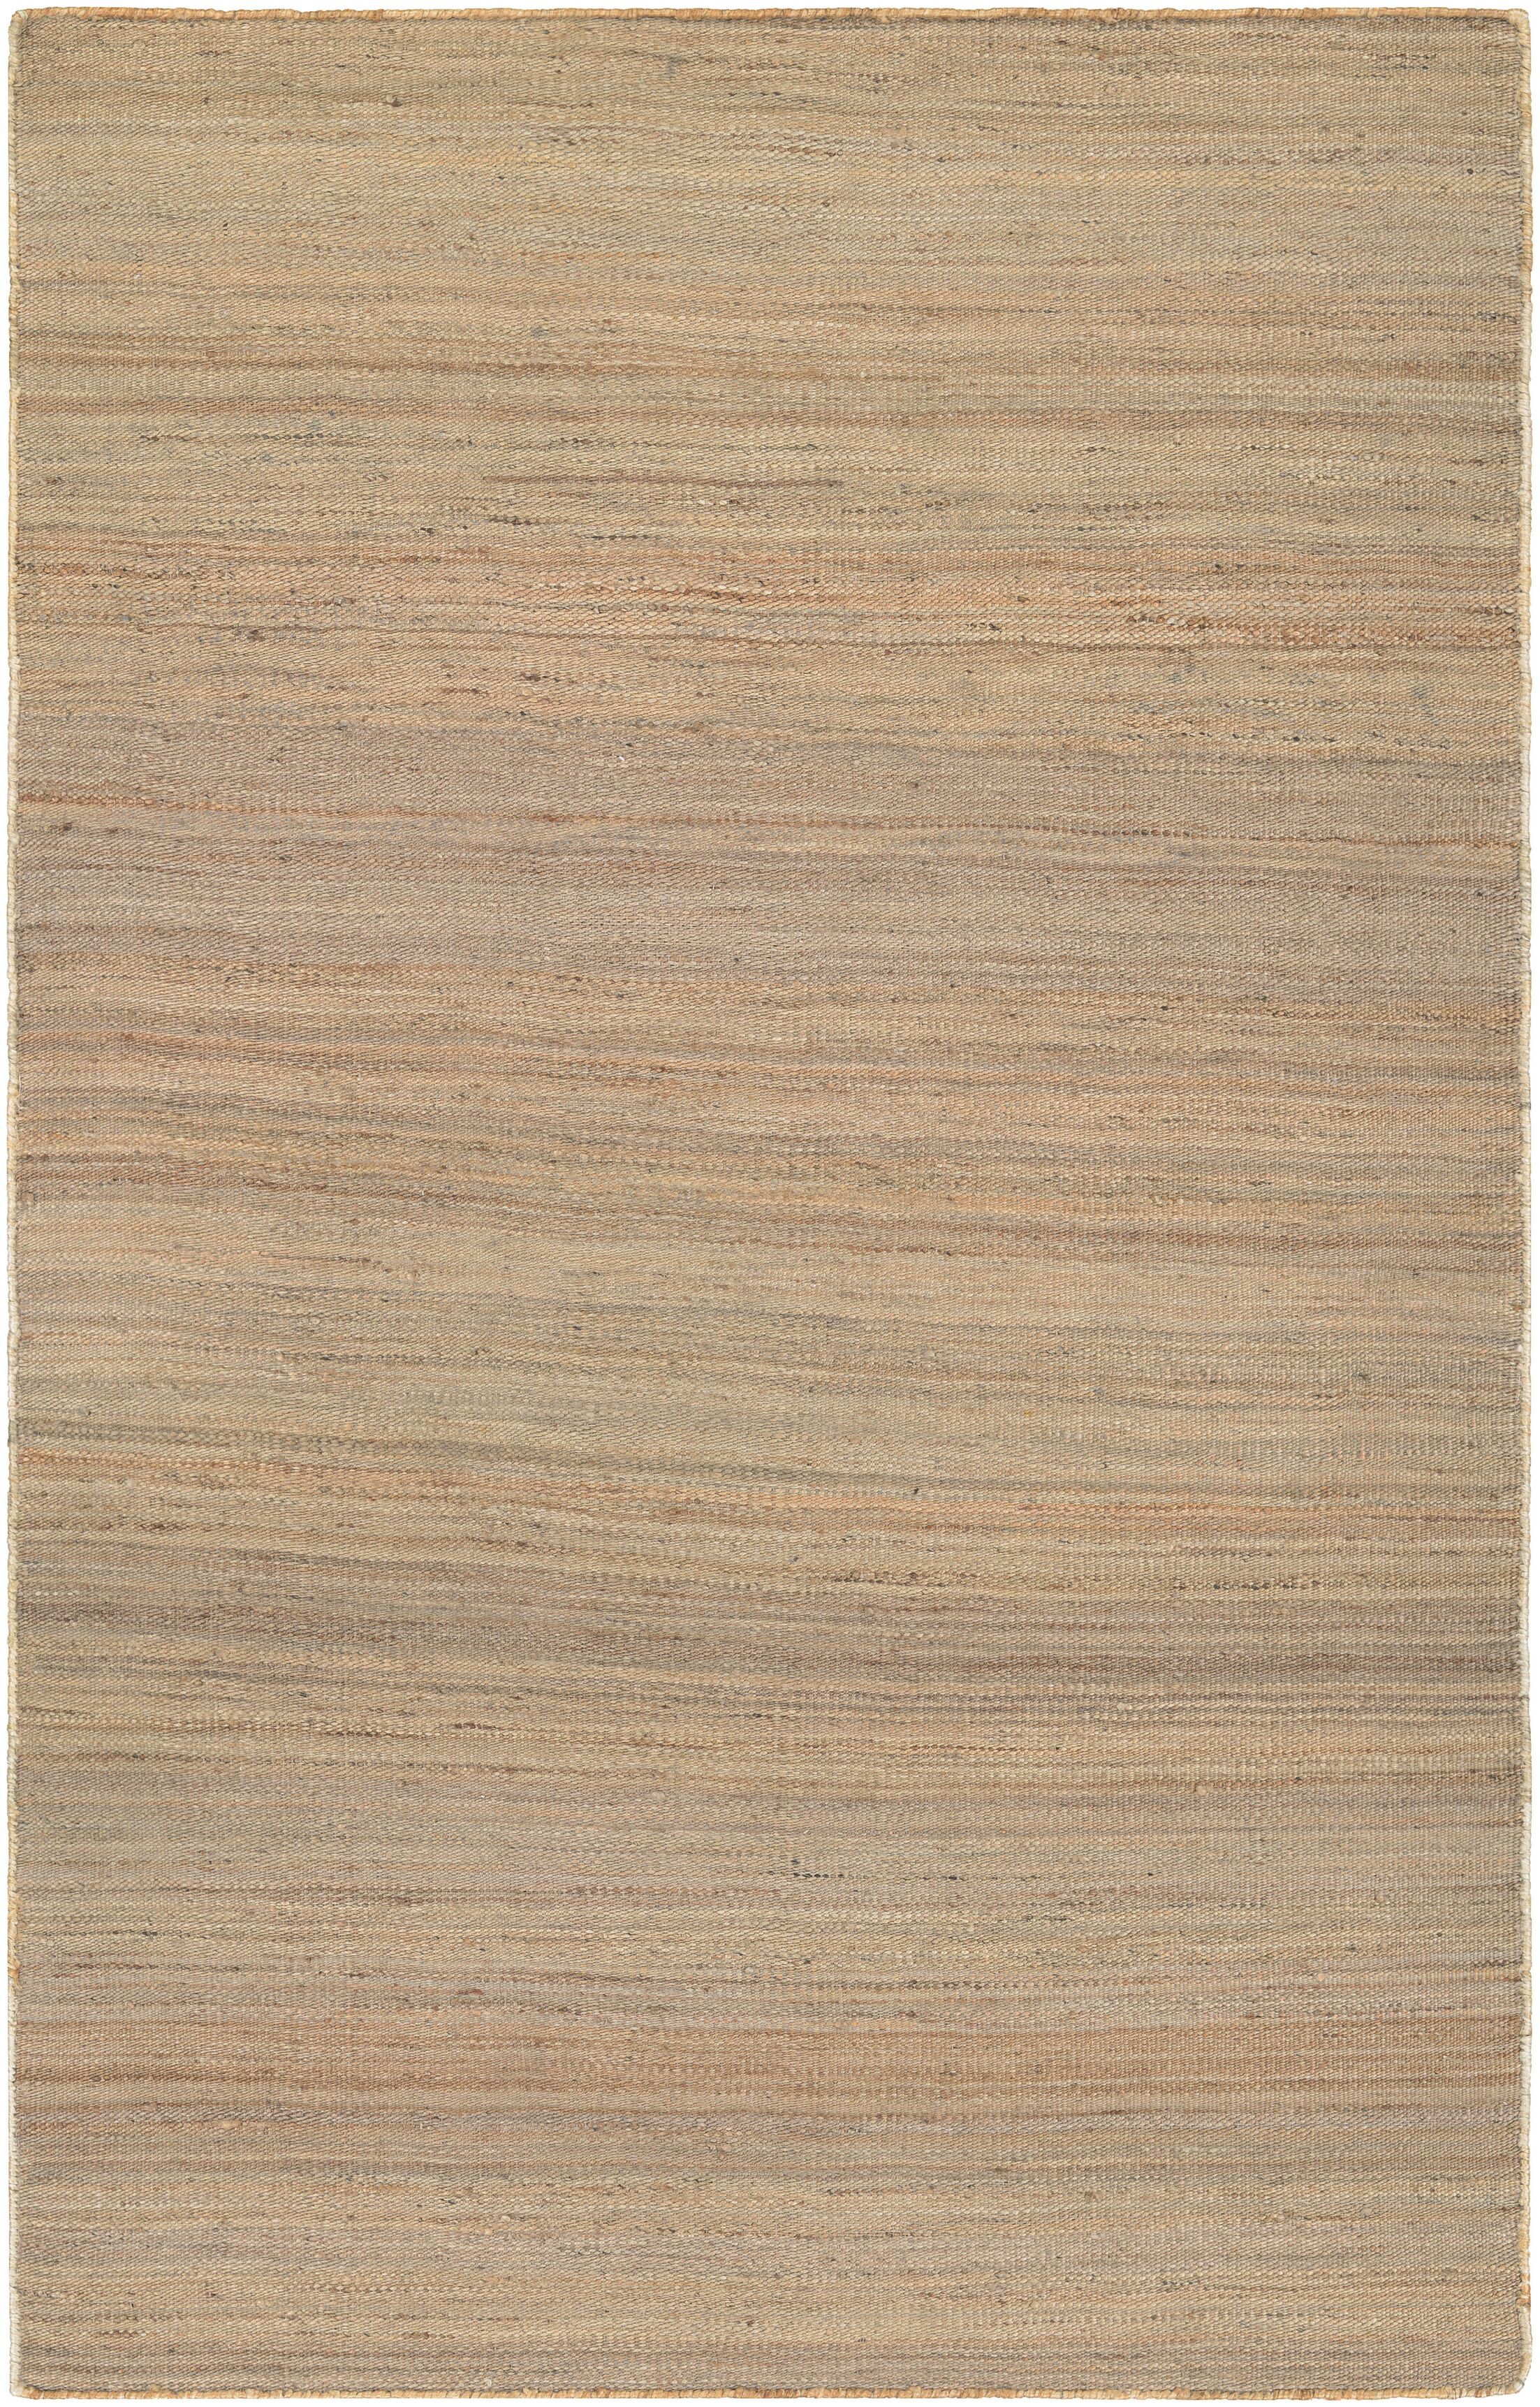 Uhlig Hand Woven Cotton Natural Area Rug Rug Size: Rectangle 7'10